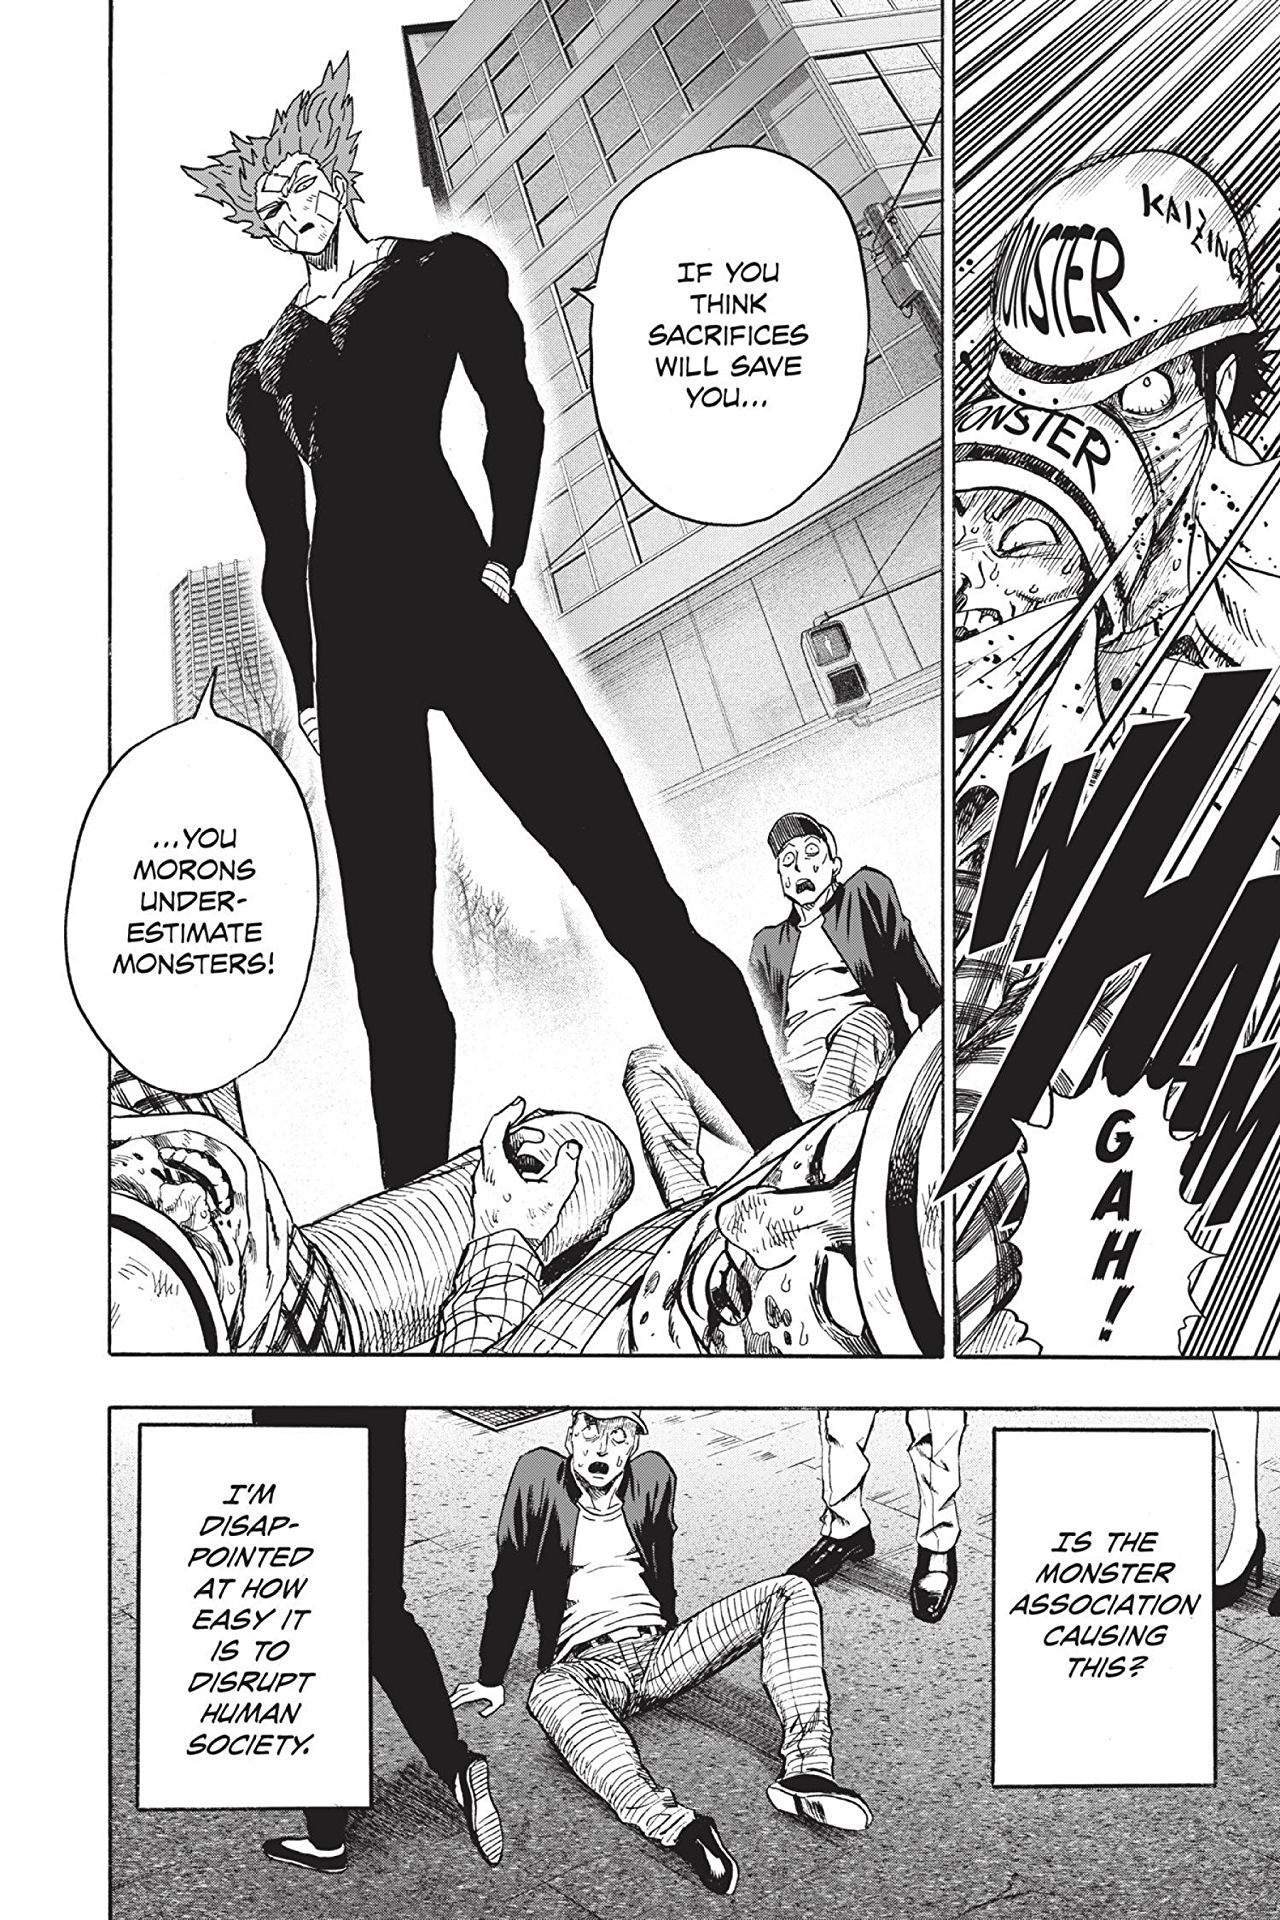 One-Punch Man, Vol. 18 Review